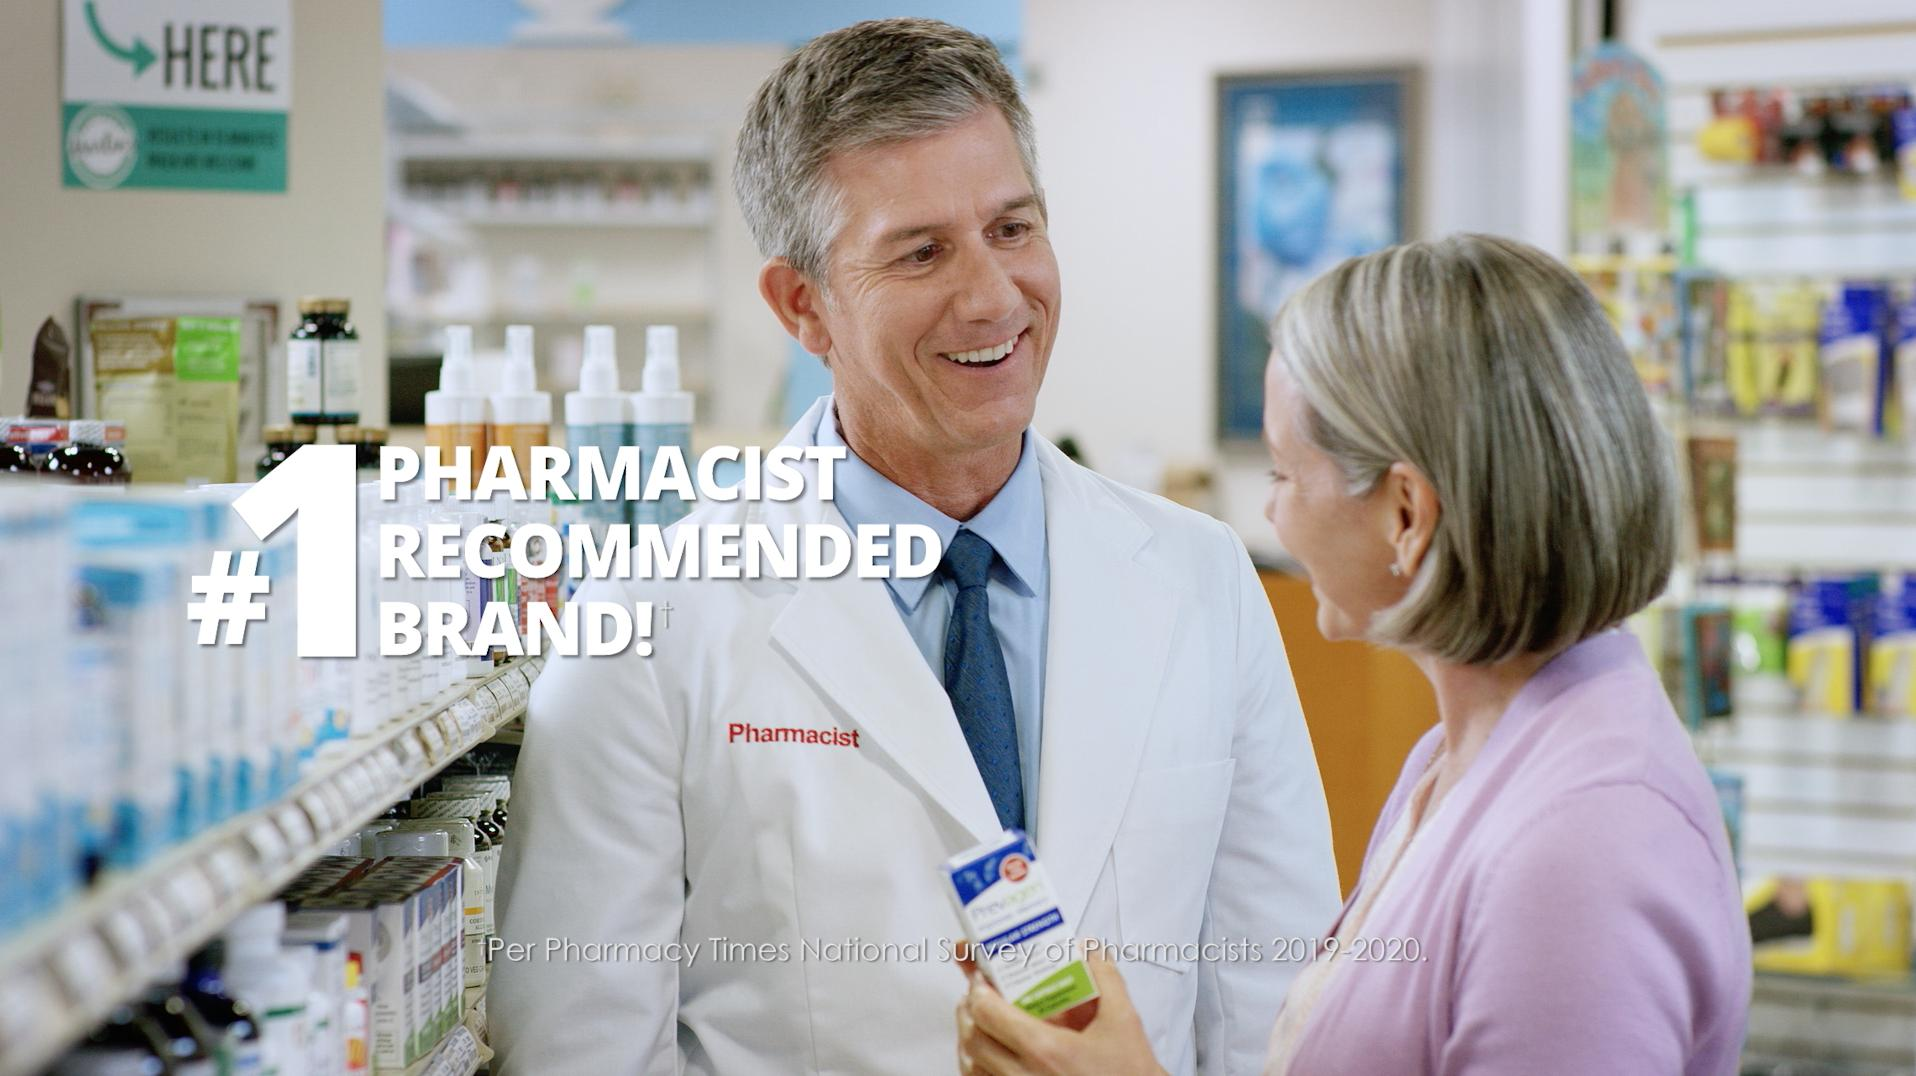 #1 Pharmacist Recommended Memory Support Brand